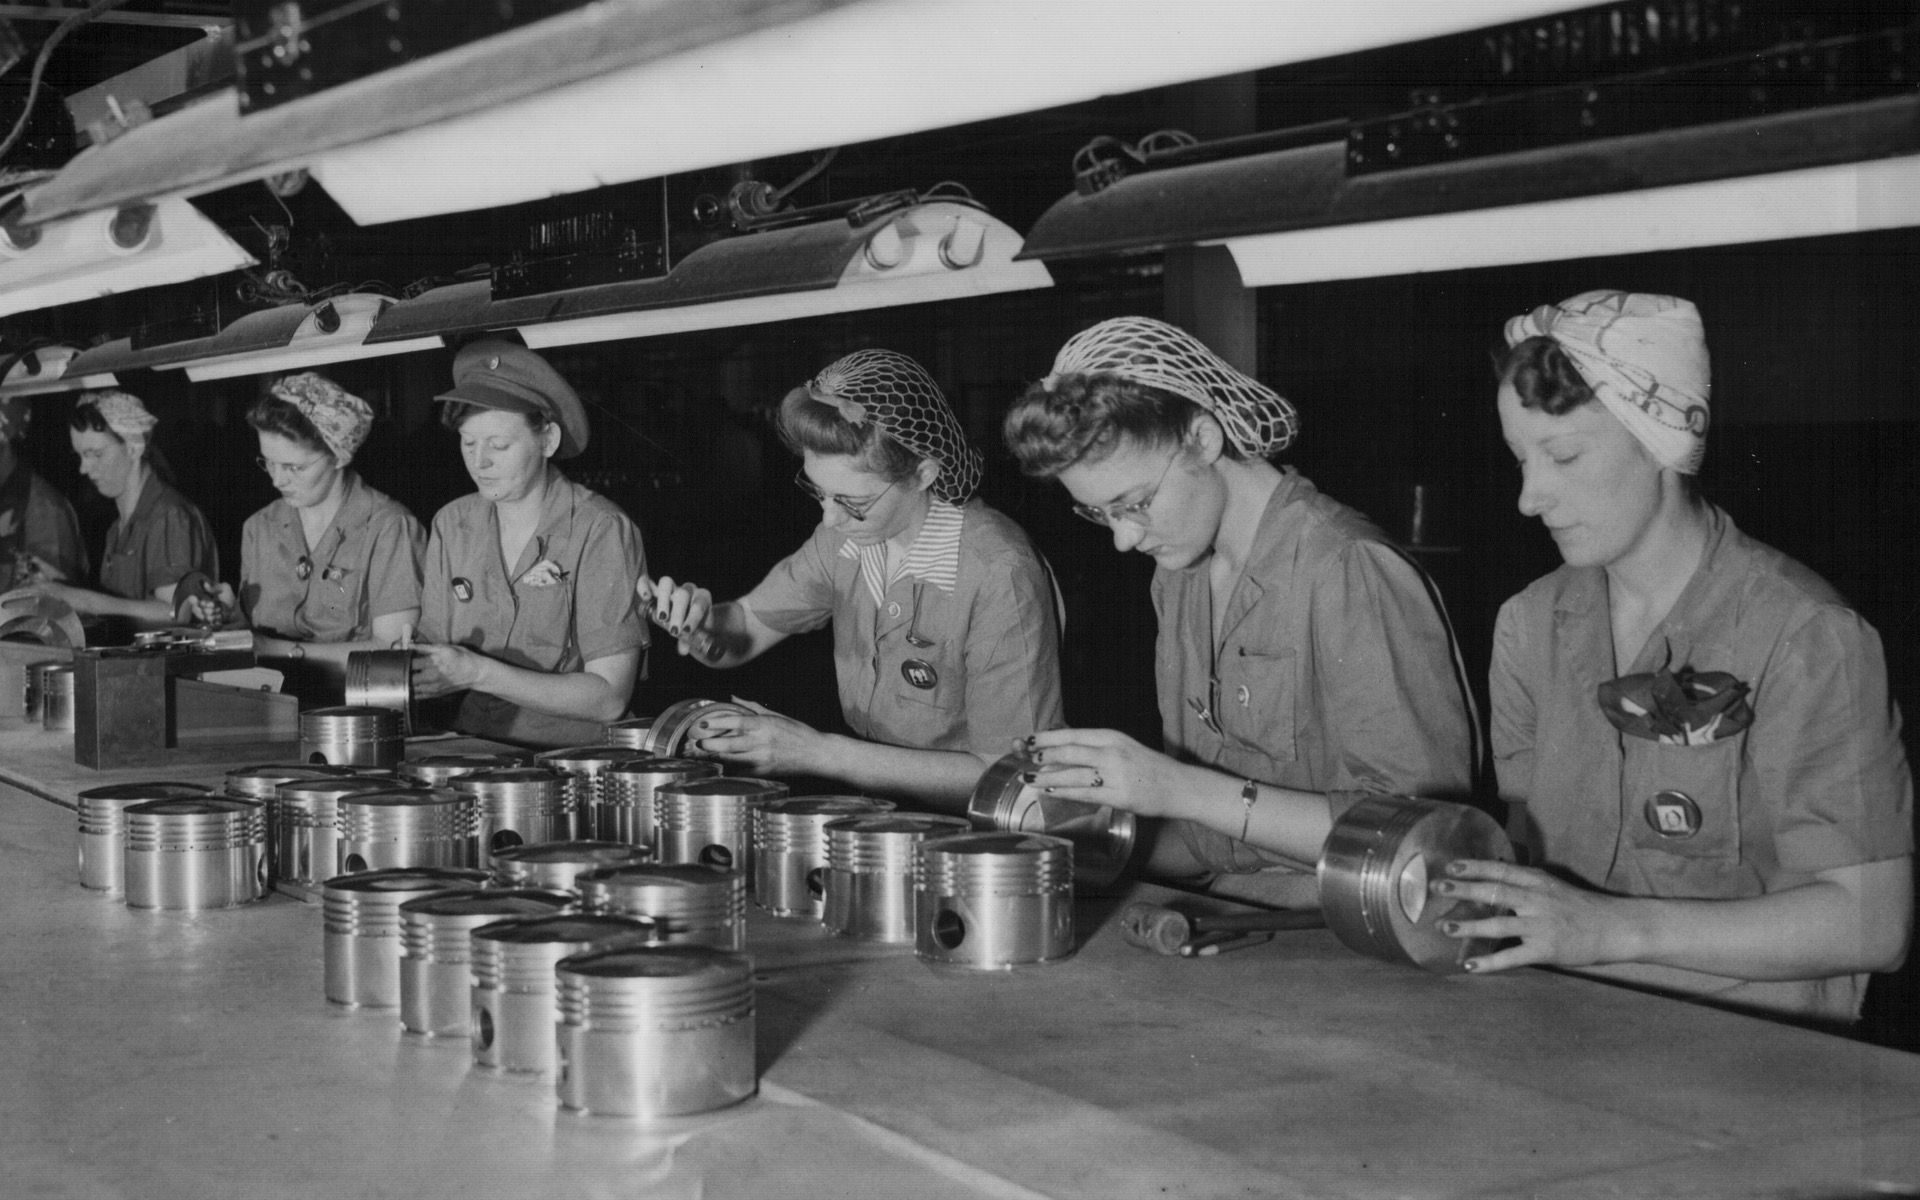 Hundreds of women were hired to assemble and finish parts for the Pratt & Whitney R-2800 18-cylinder air-cooled aircraft engine during World War II. Most of them had to relinquish their positions when servicemen returned to their old jobs at the plant after the war ended. Courtesy Brian McMahon